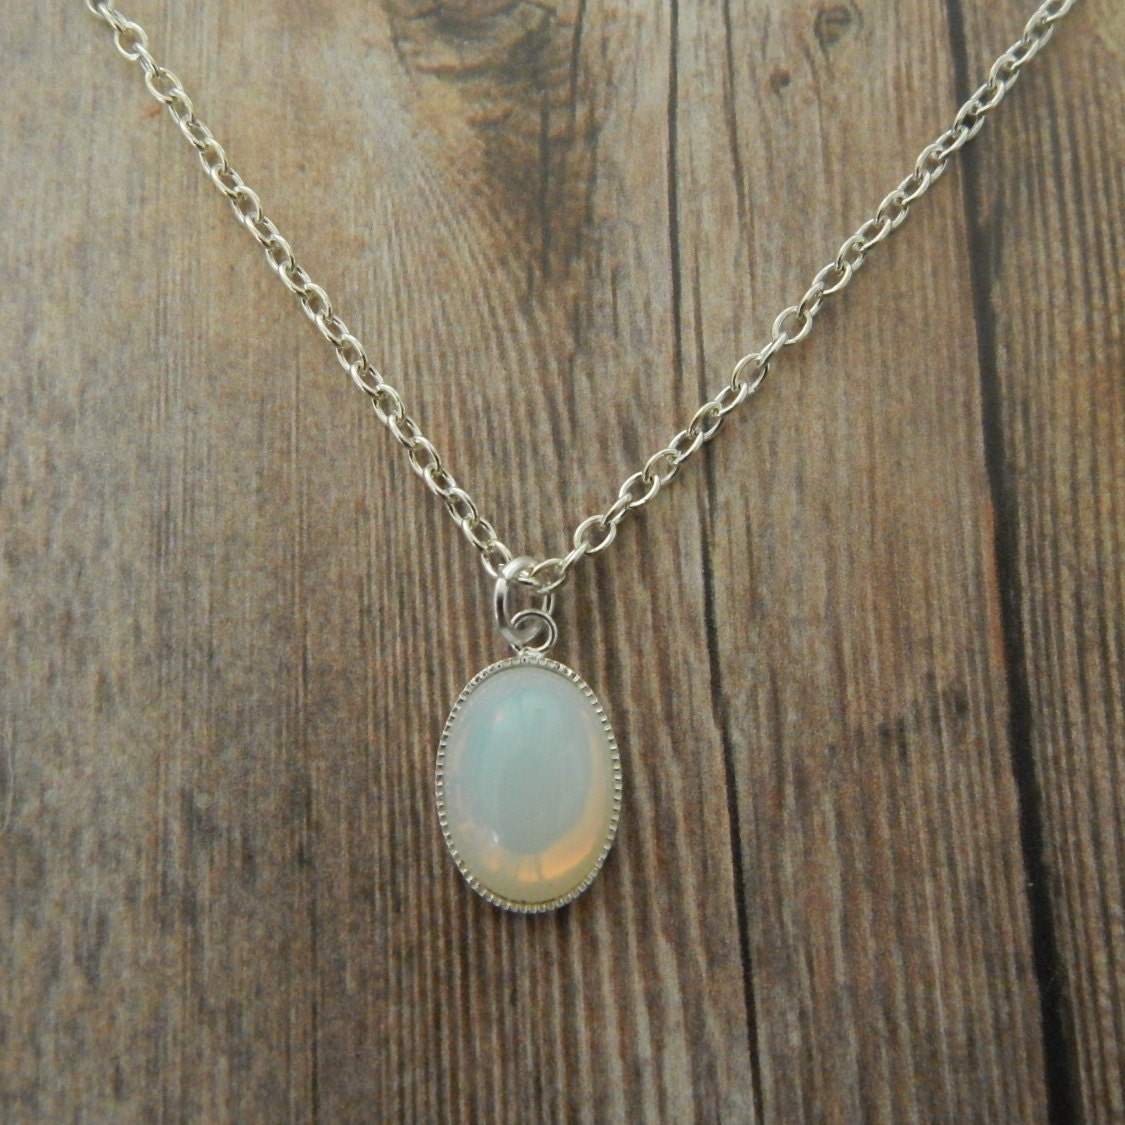 White Opal Necklace Opal Pendant Silver White Opal. Blue Crystal Pendant. Cool Watches. Dainty Necklace. Mine Cut Diamond Engagement Rings. Mixed Metal Engagement Rings. Track Watches. Large Gold Earrings. Crystal Beads For Jewelry